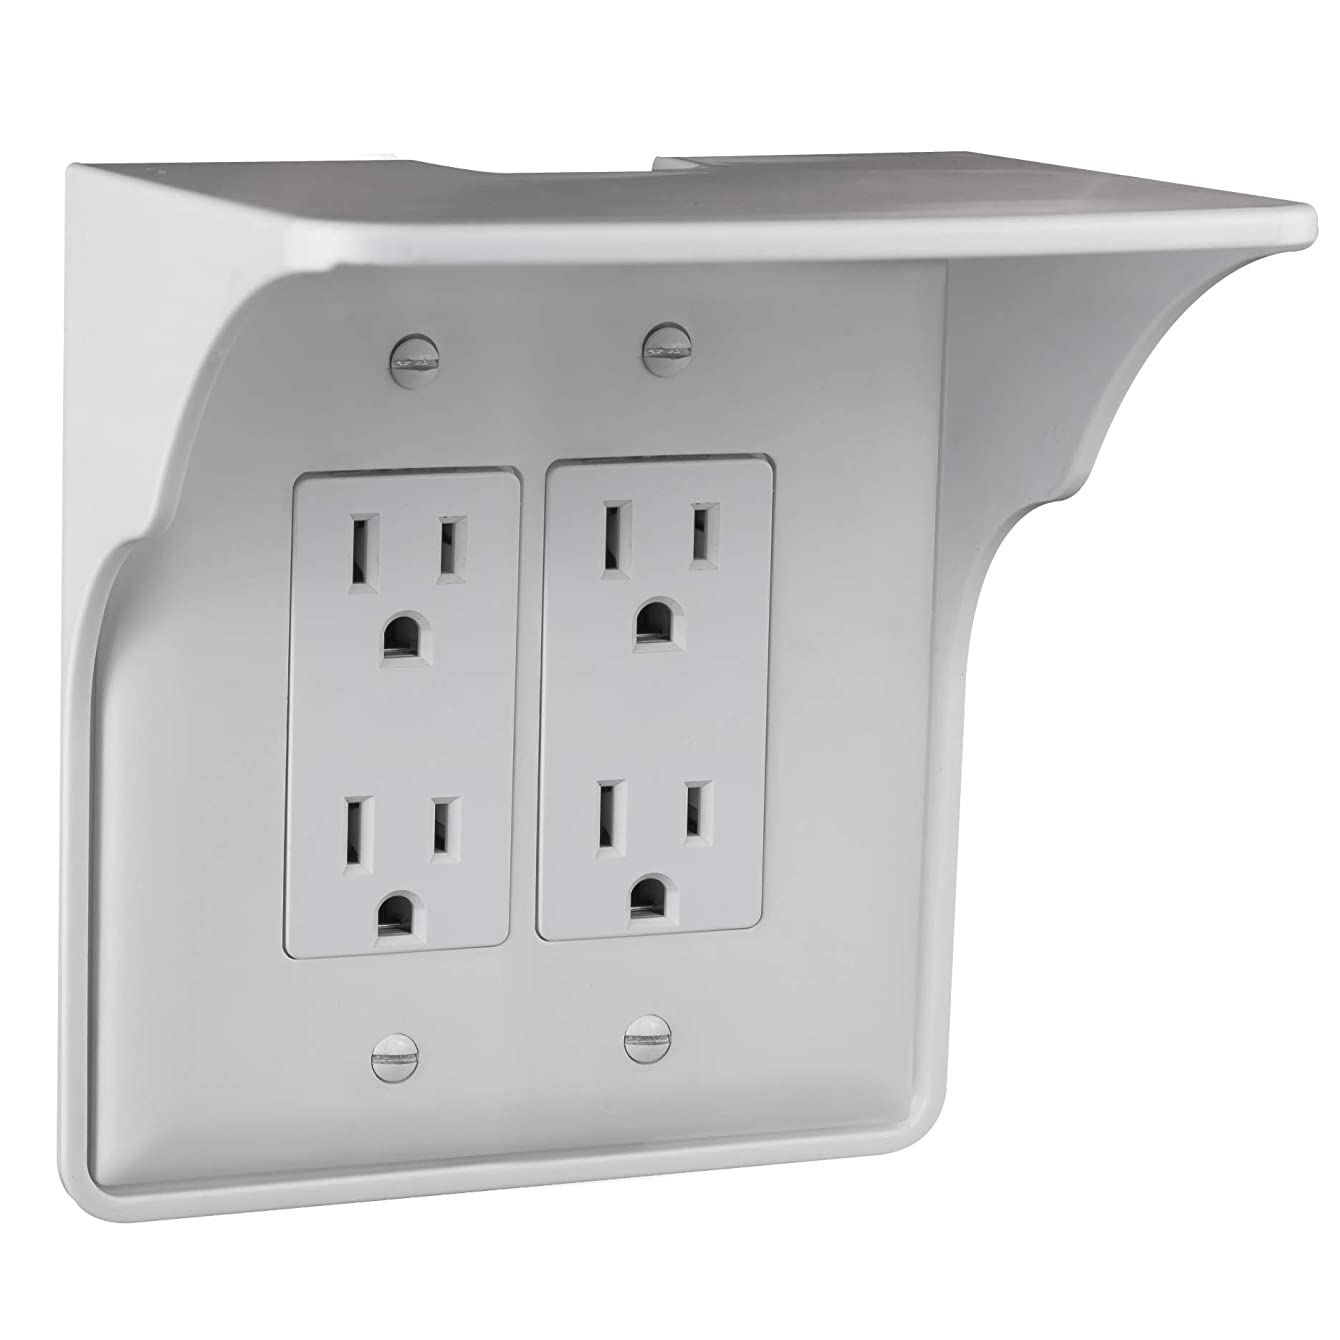 Storage Theory   Double Outlet Power Perch   Ultimate Outlet Shelf   Easy Installation, No Additional Hardware Required   Holds Up to 10lbs   White Color   Single Shelf